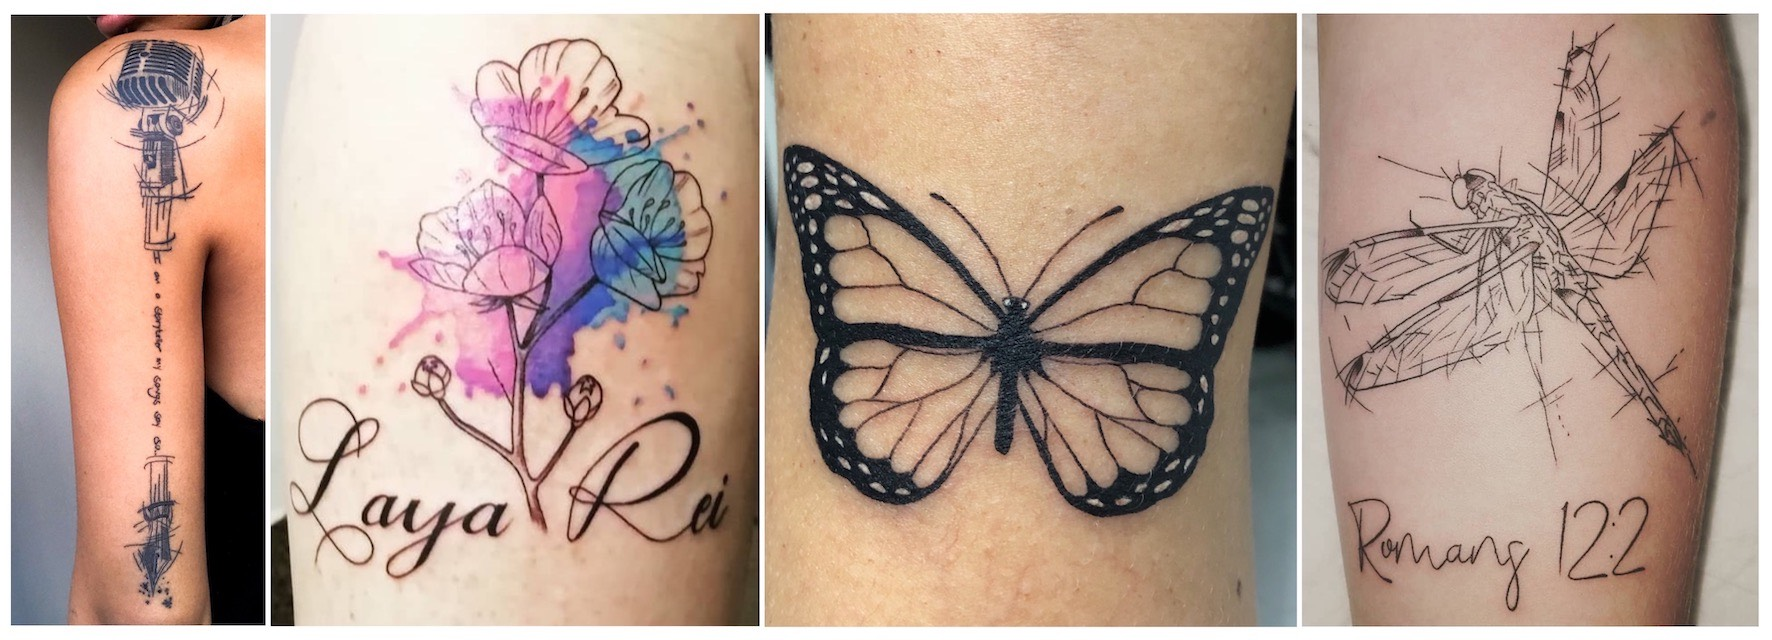 A selection of tattoos done by Lyndon Hoppolite